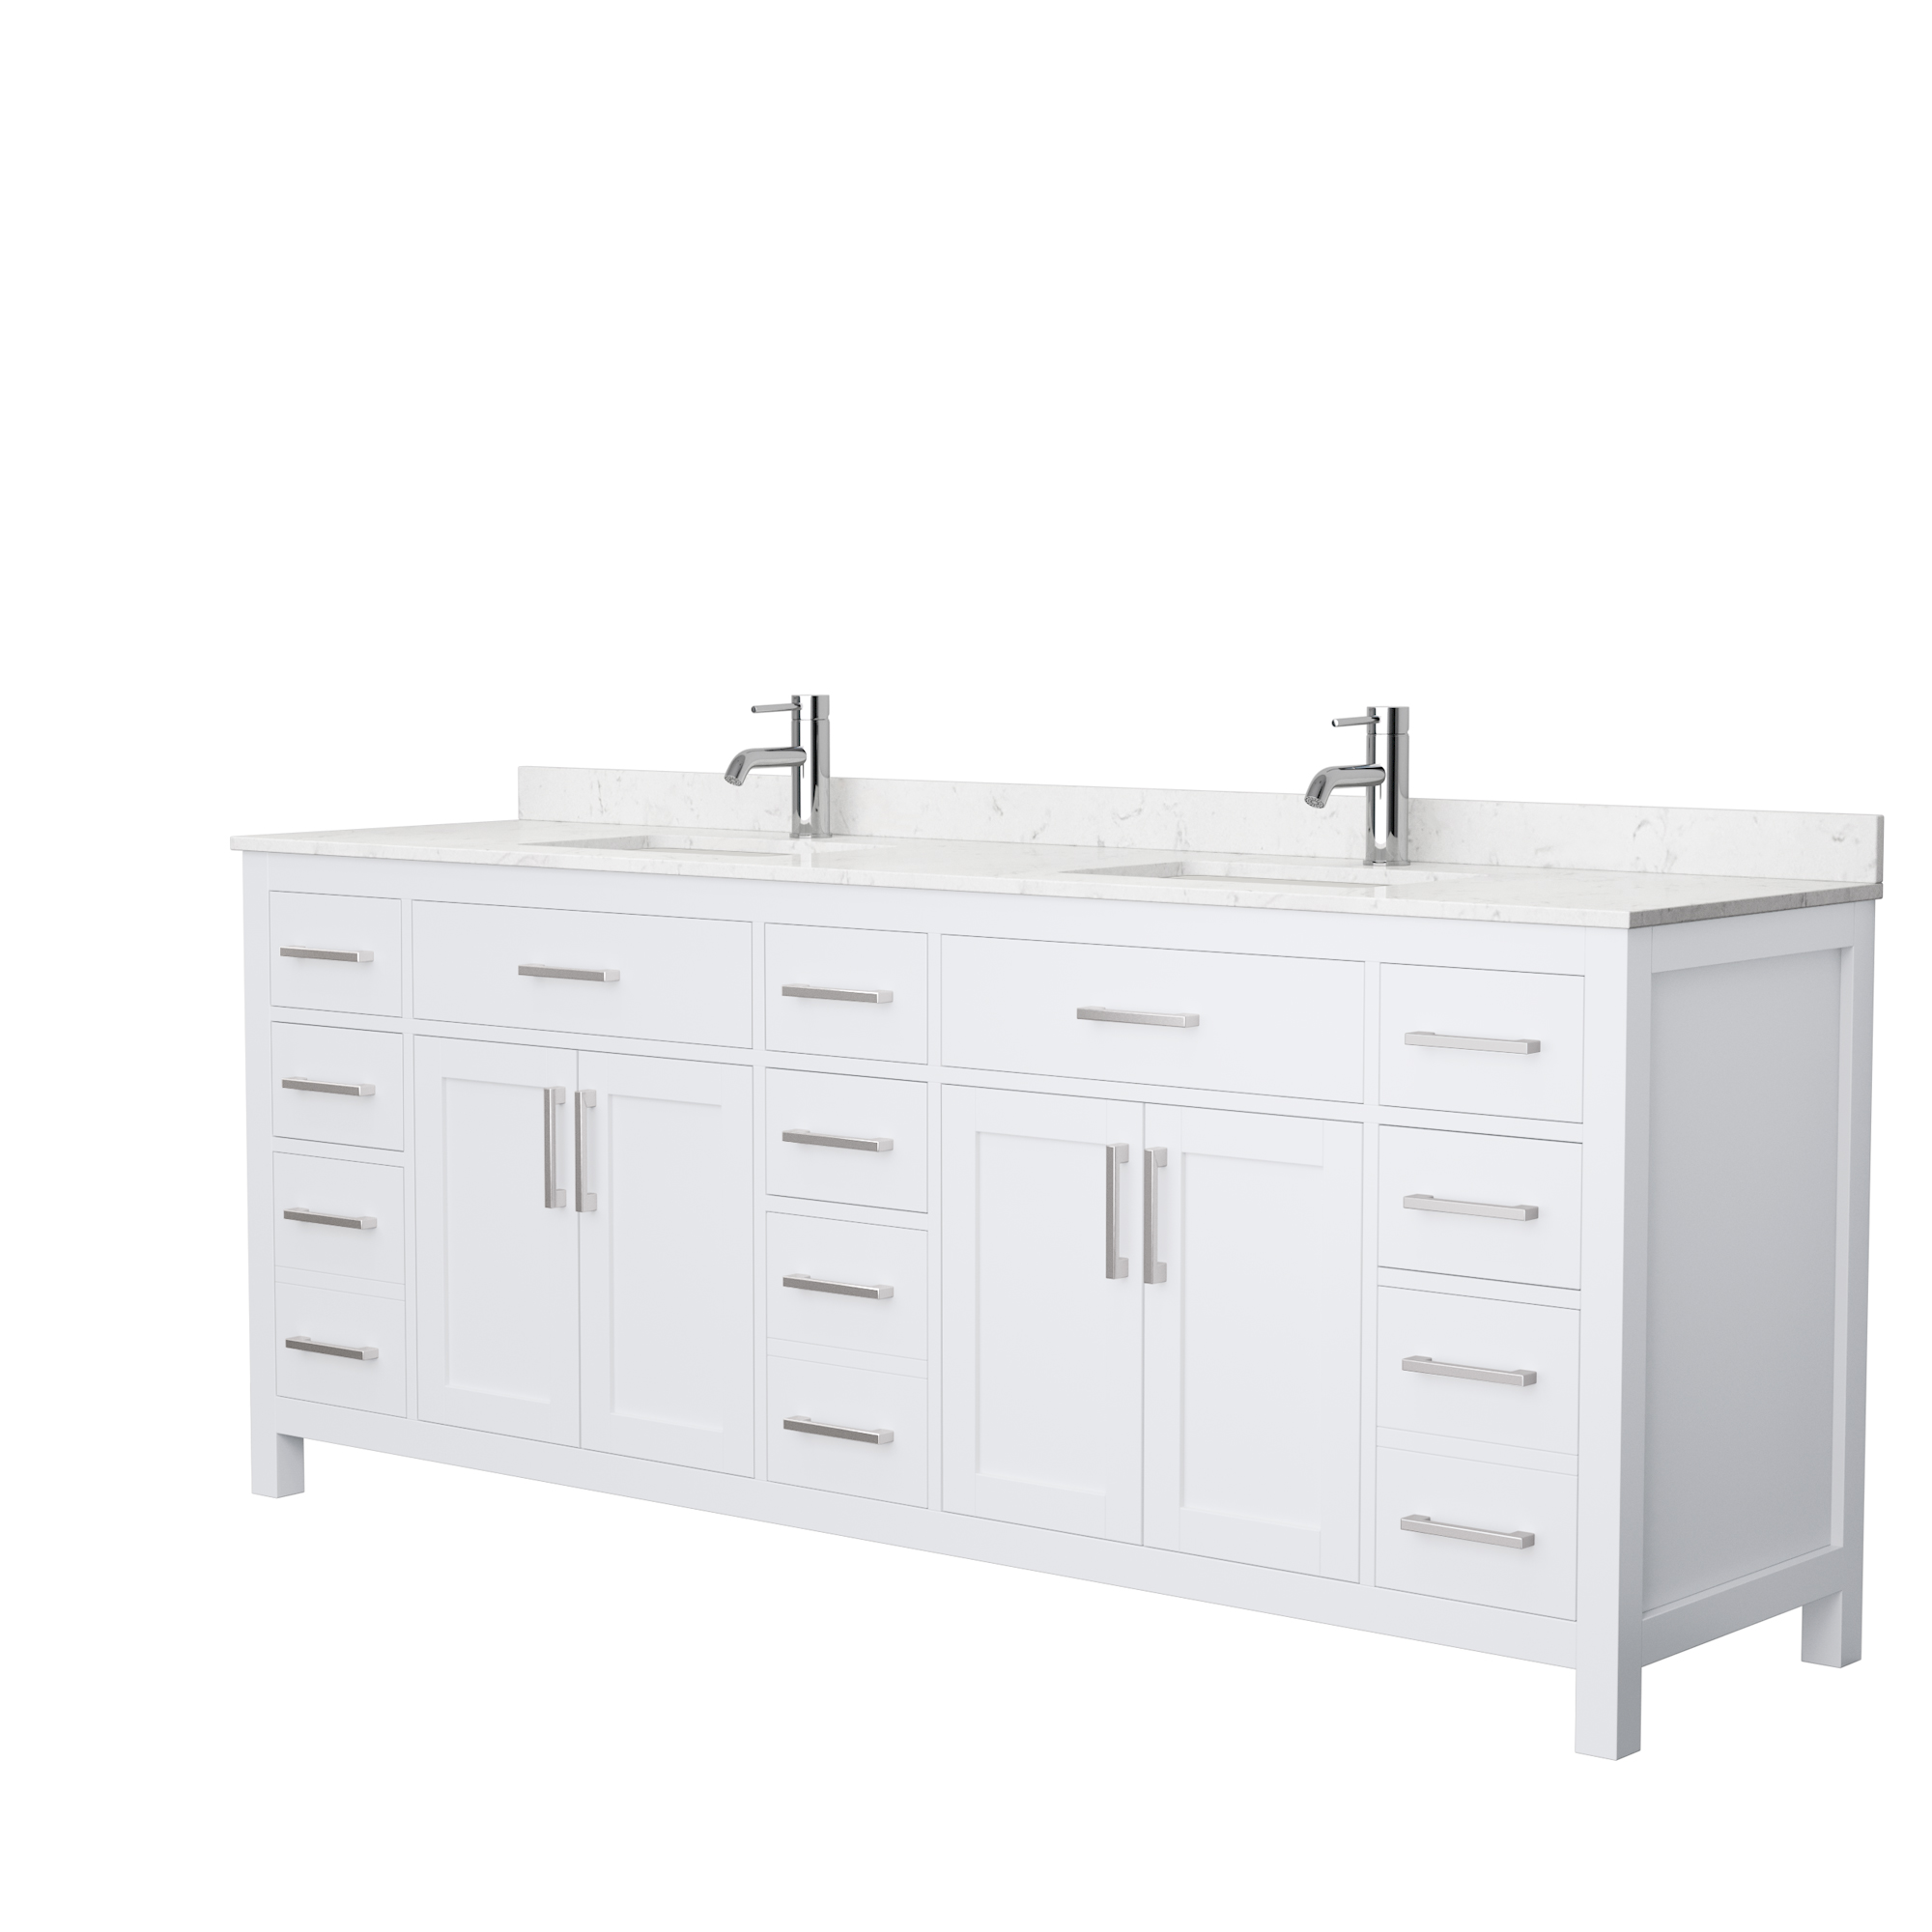 Beckett 84 Double Bathroom Vanity White Beautiful Bathroom Furniture For Every Home Wyndham Collection